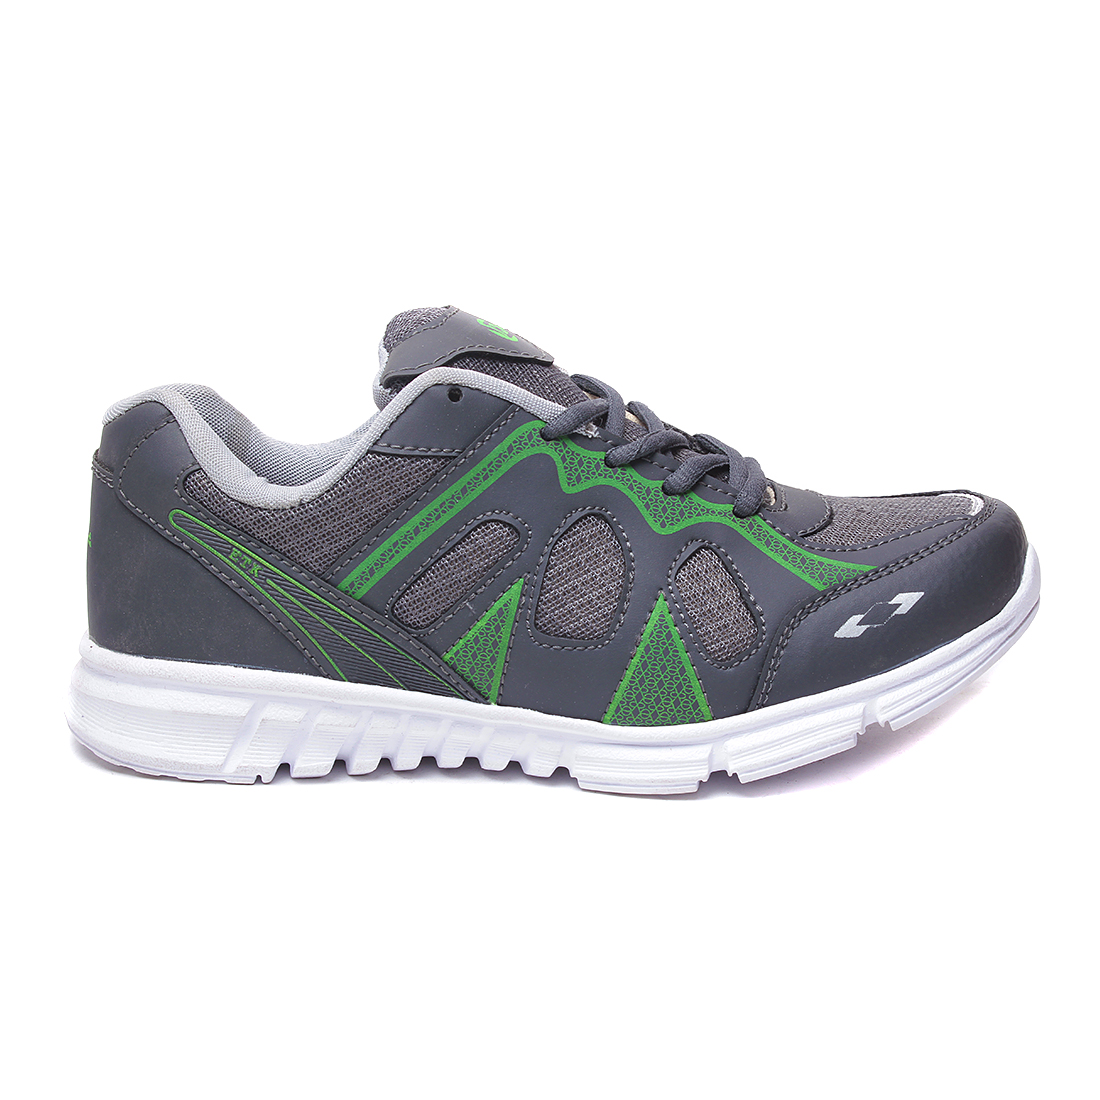 sports shoes for shopping 28 images kytopshop shop for